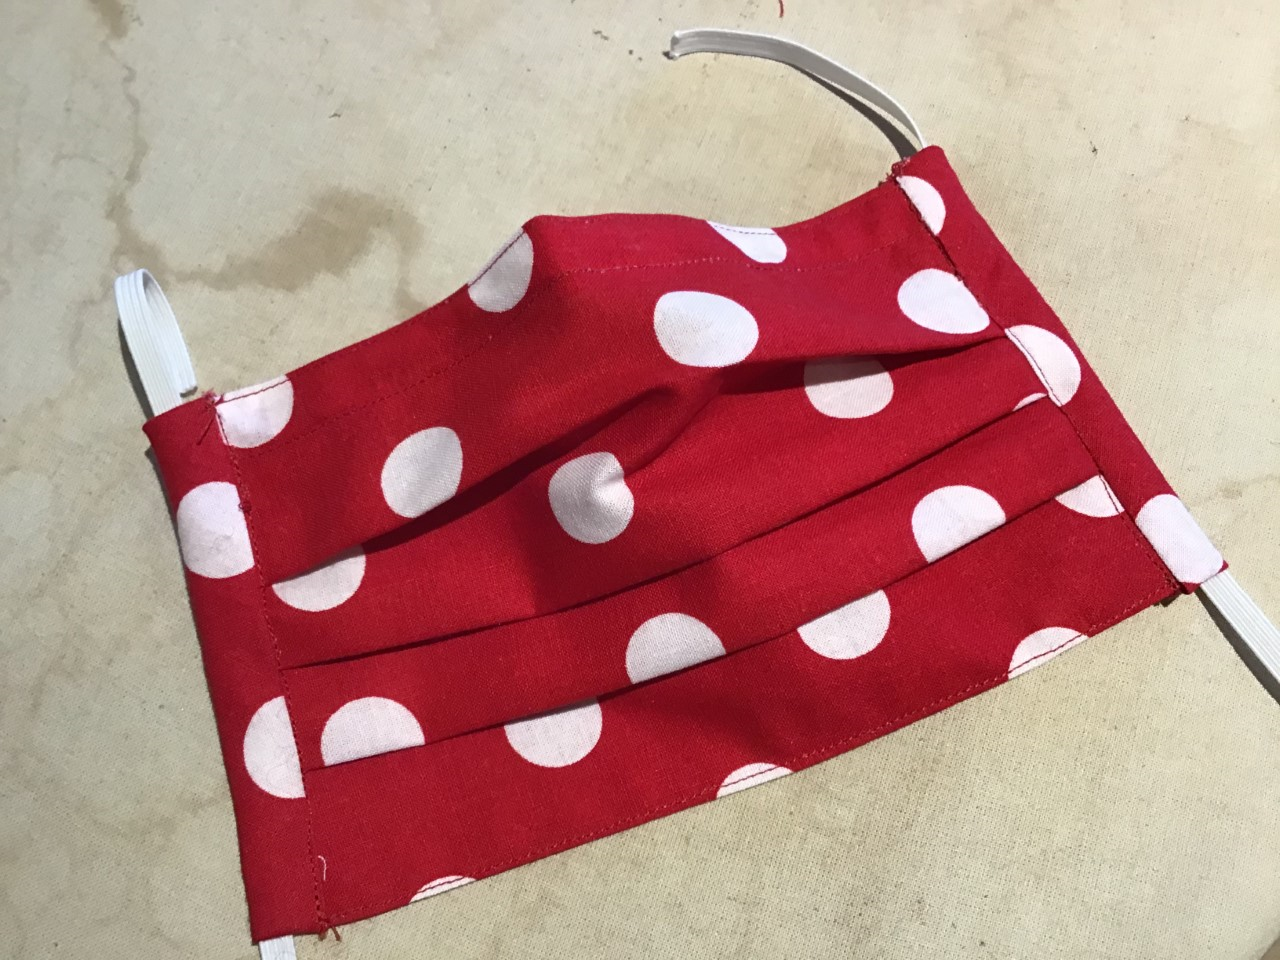 a home-made surgical mask